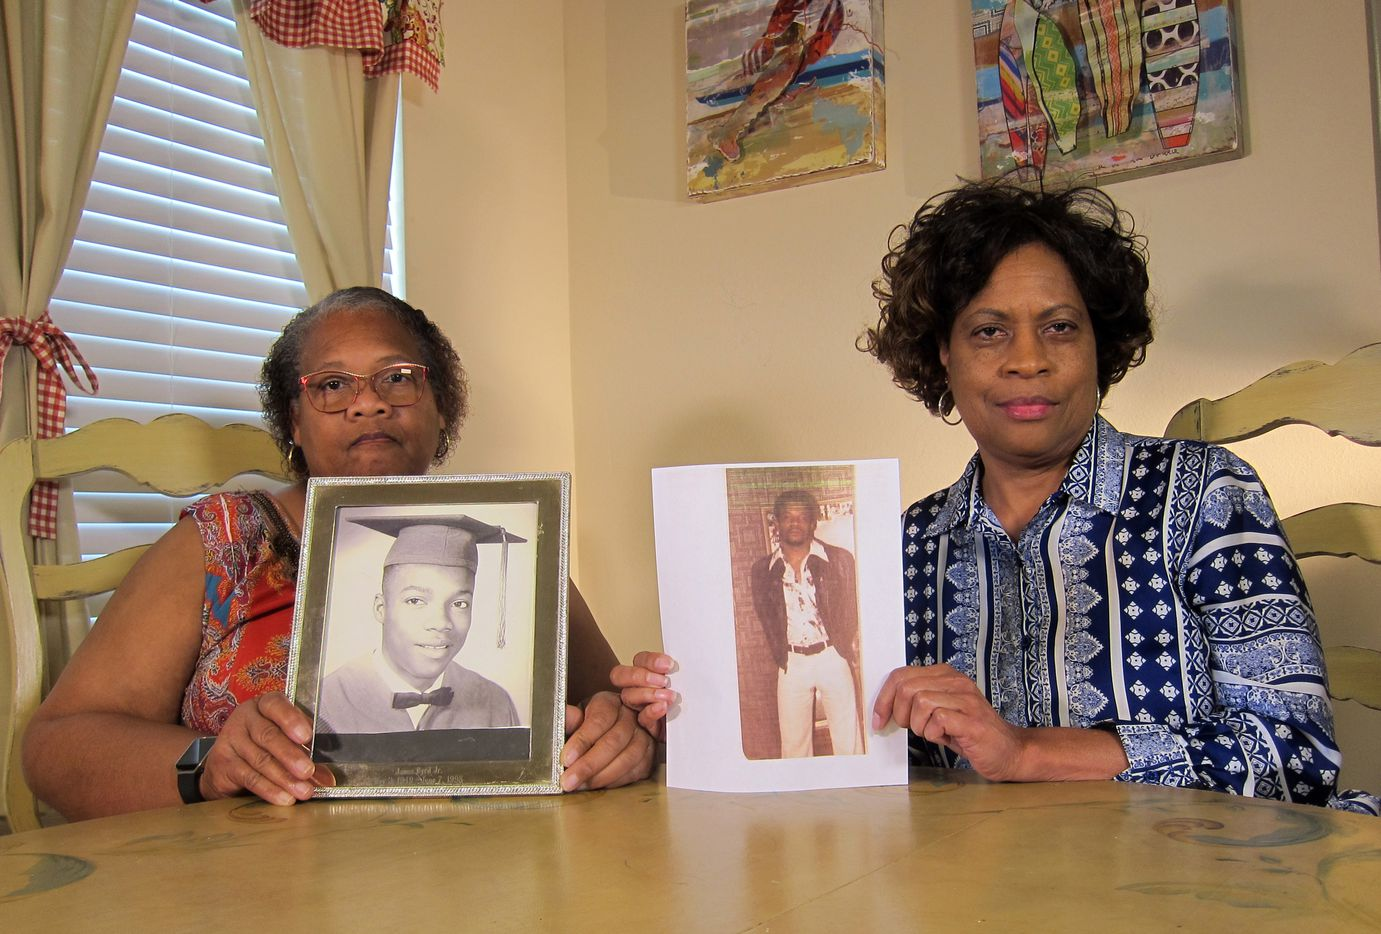 In this Wednesday, April 10, 2019, photo Mylinda Byrd Washington, 66, left, and Louvon Byrd Harris, 61, hold up photographs of their brother James Byrd Jr. in Houston. James Byrd Jr. was the victim of what is considered to be one of the most gruesome hate crime murders in recent Texas history.